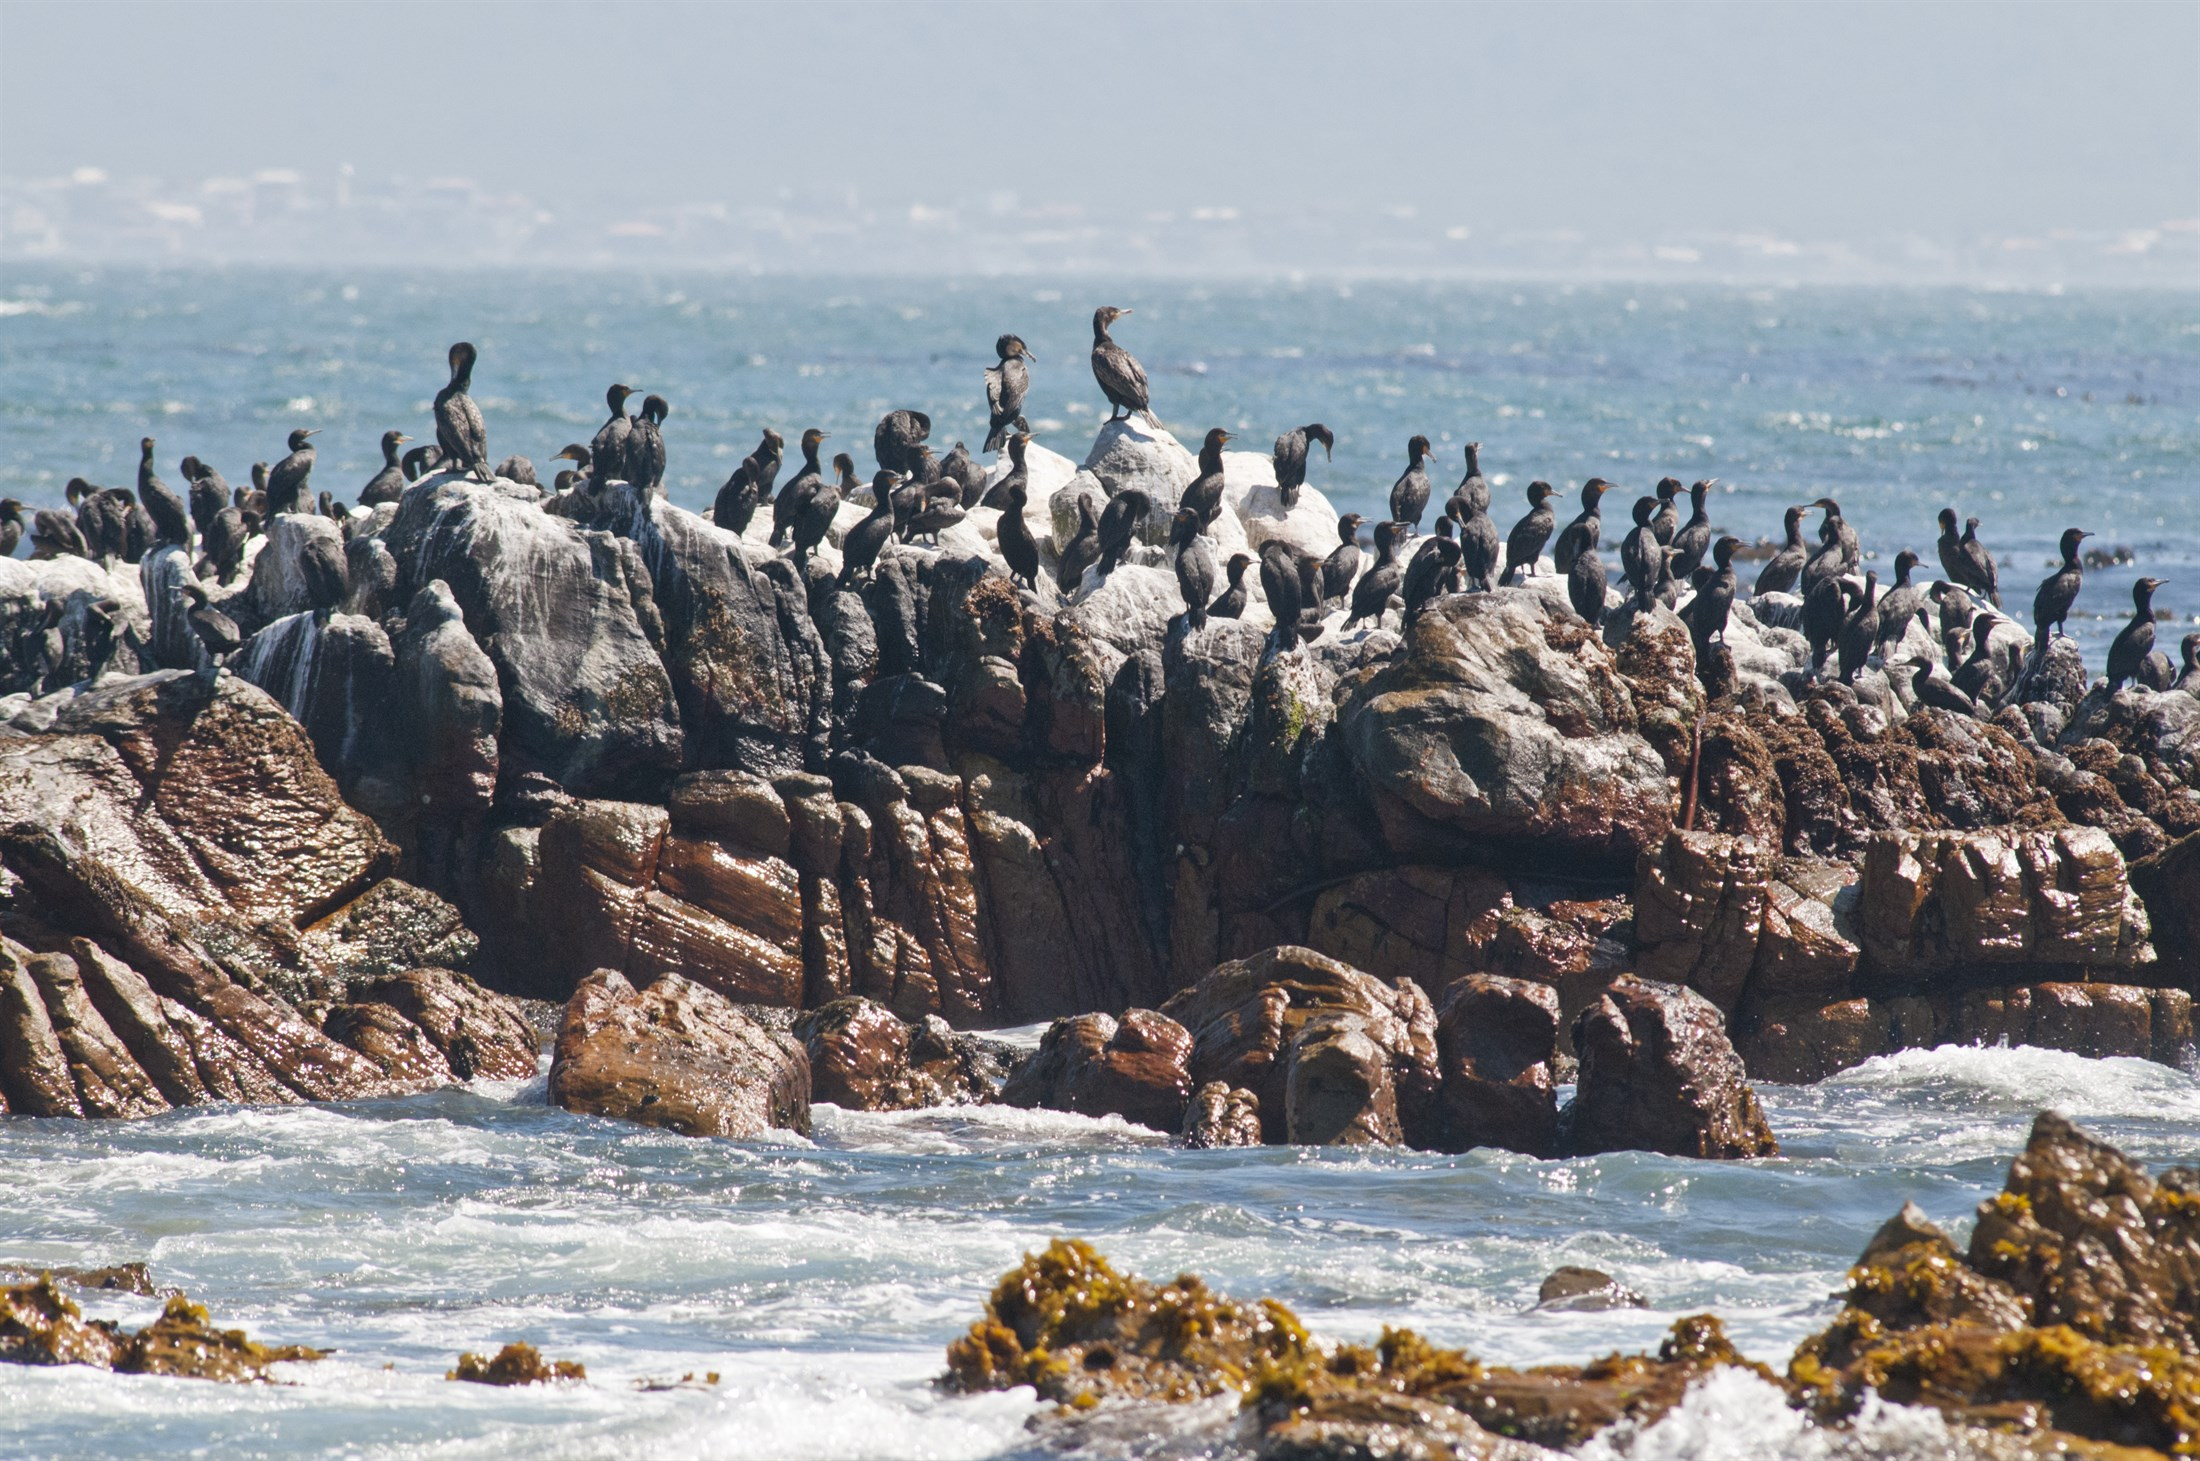 different cormoran species at dyer island south africa